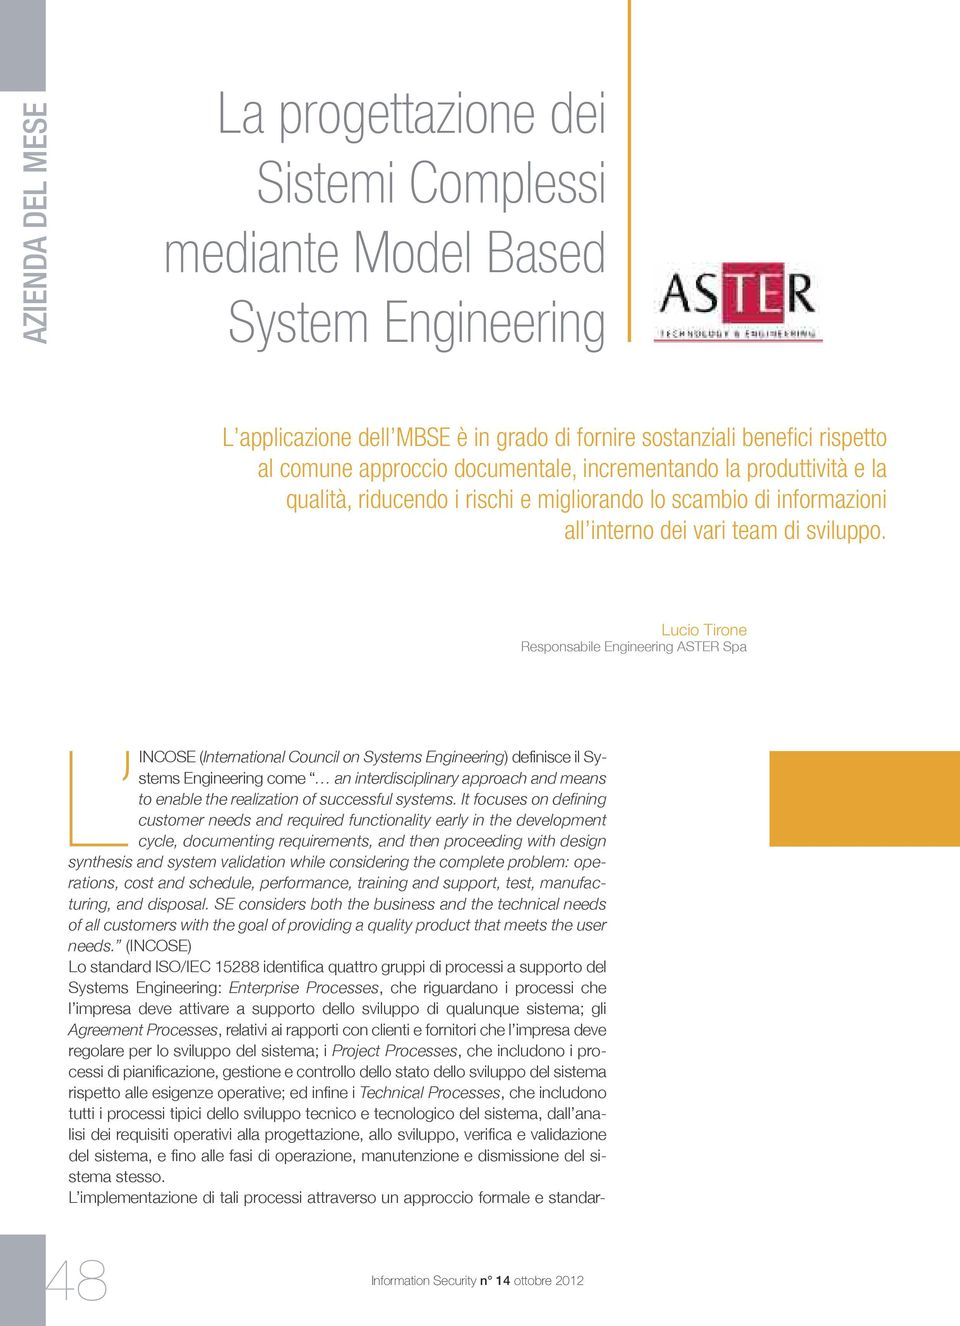 Lucio Tirone Responsabile Engineering ASTER Spa (International Council on Systems Engineering) definisce il Systems Engineering come an interdisciplinary approach and means to enable the realization